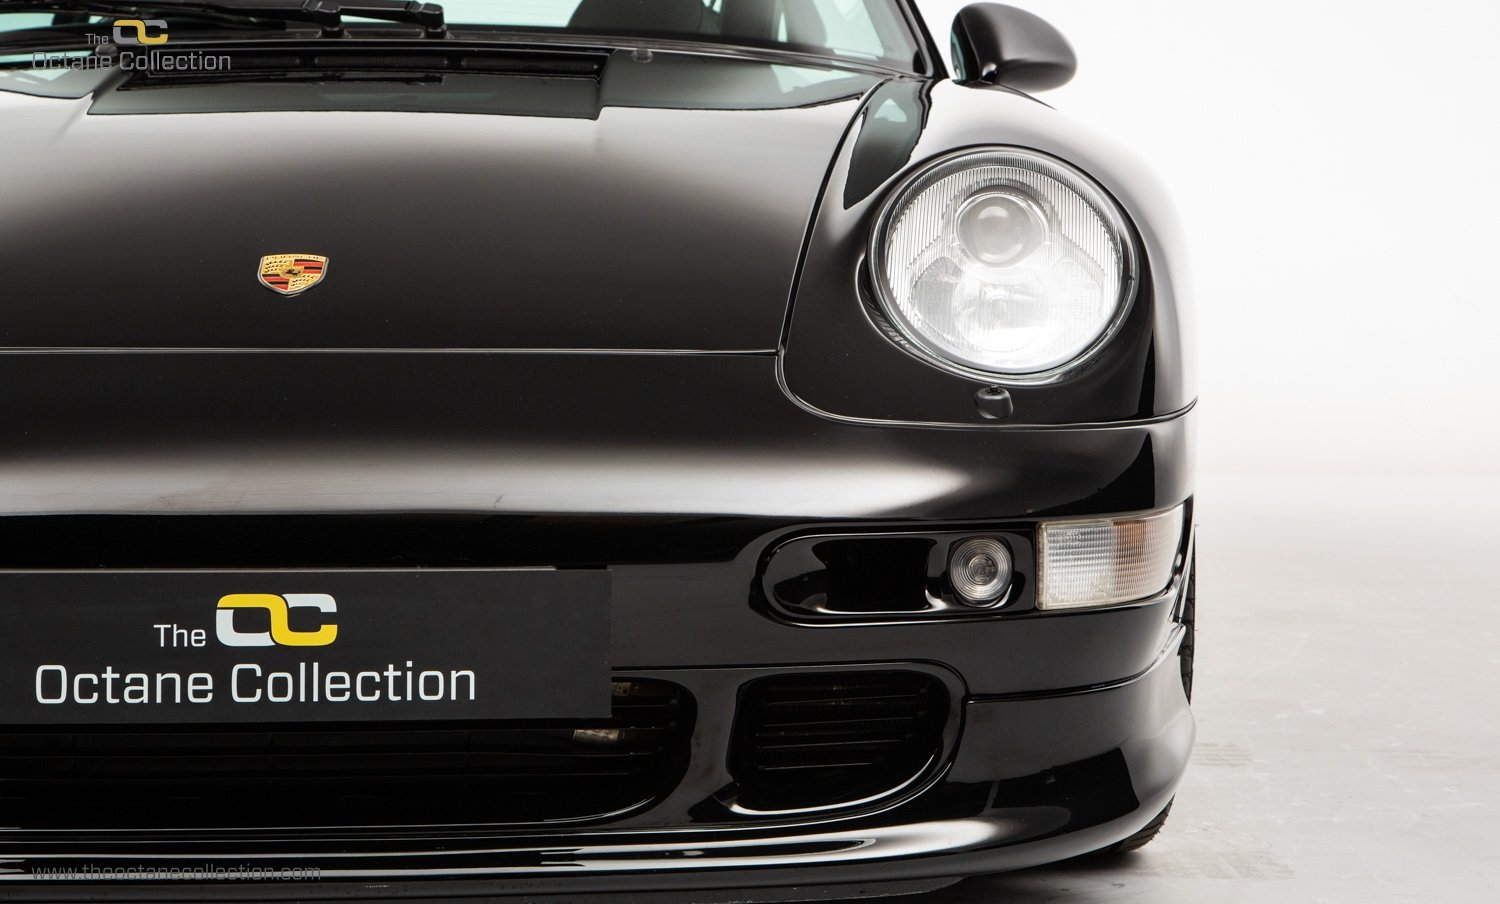 1998 PORSCHE 993 TURBO S // 1 OF 23 RHD CARS // UK C16 // FPSH For Sale (picture 24 of 24)